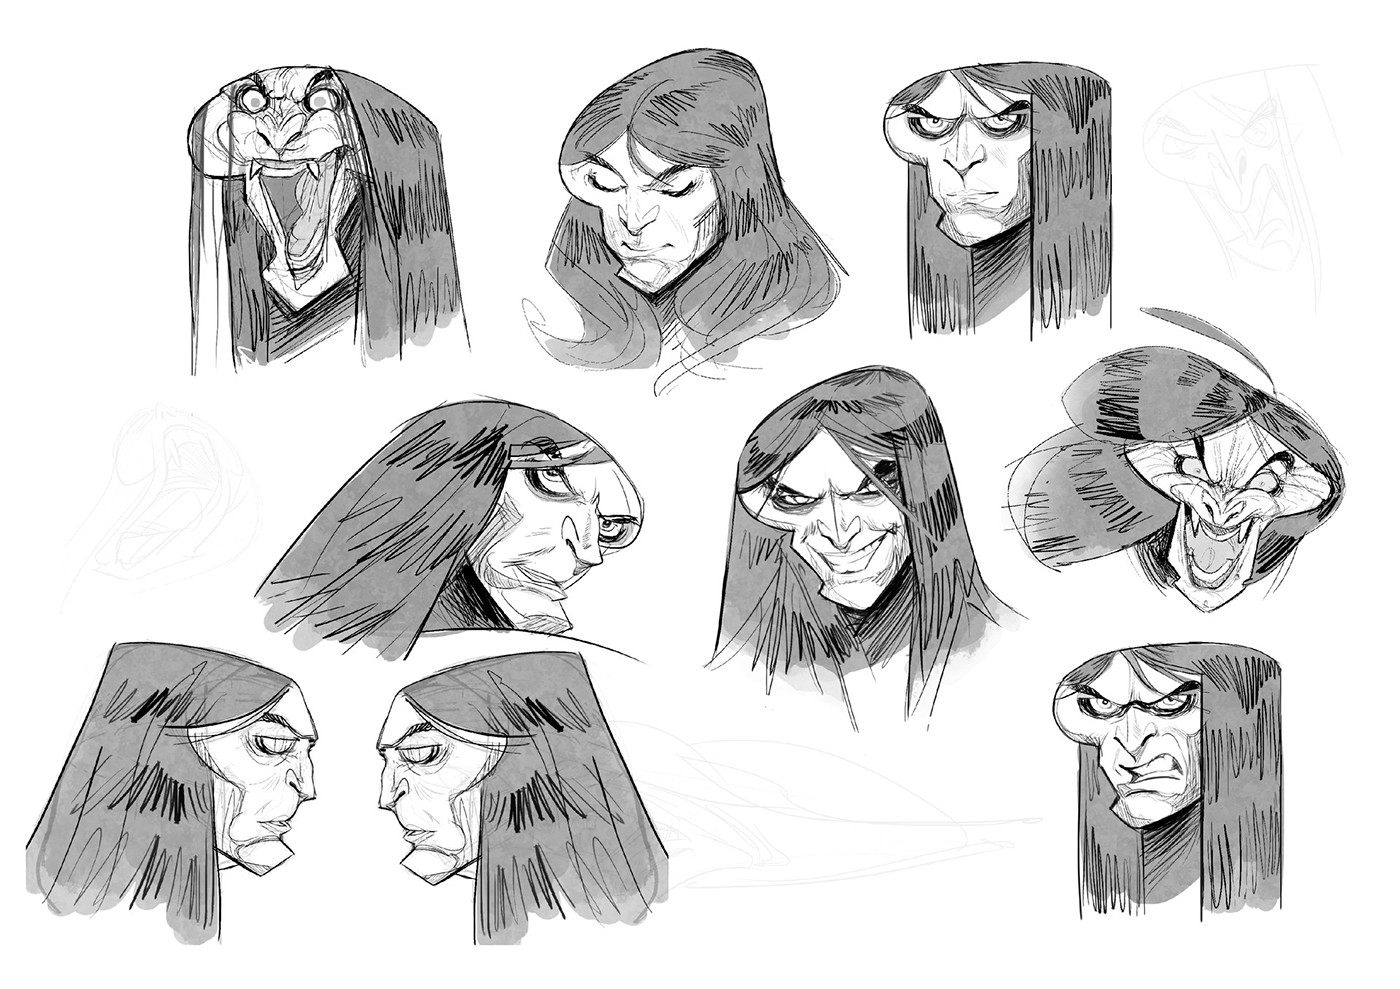 Conan The Barbarian (Character Design) on Behance